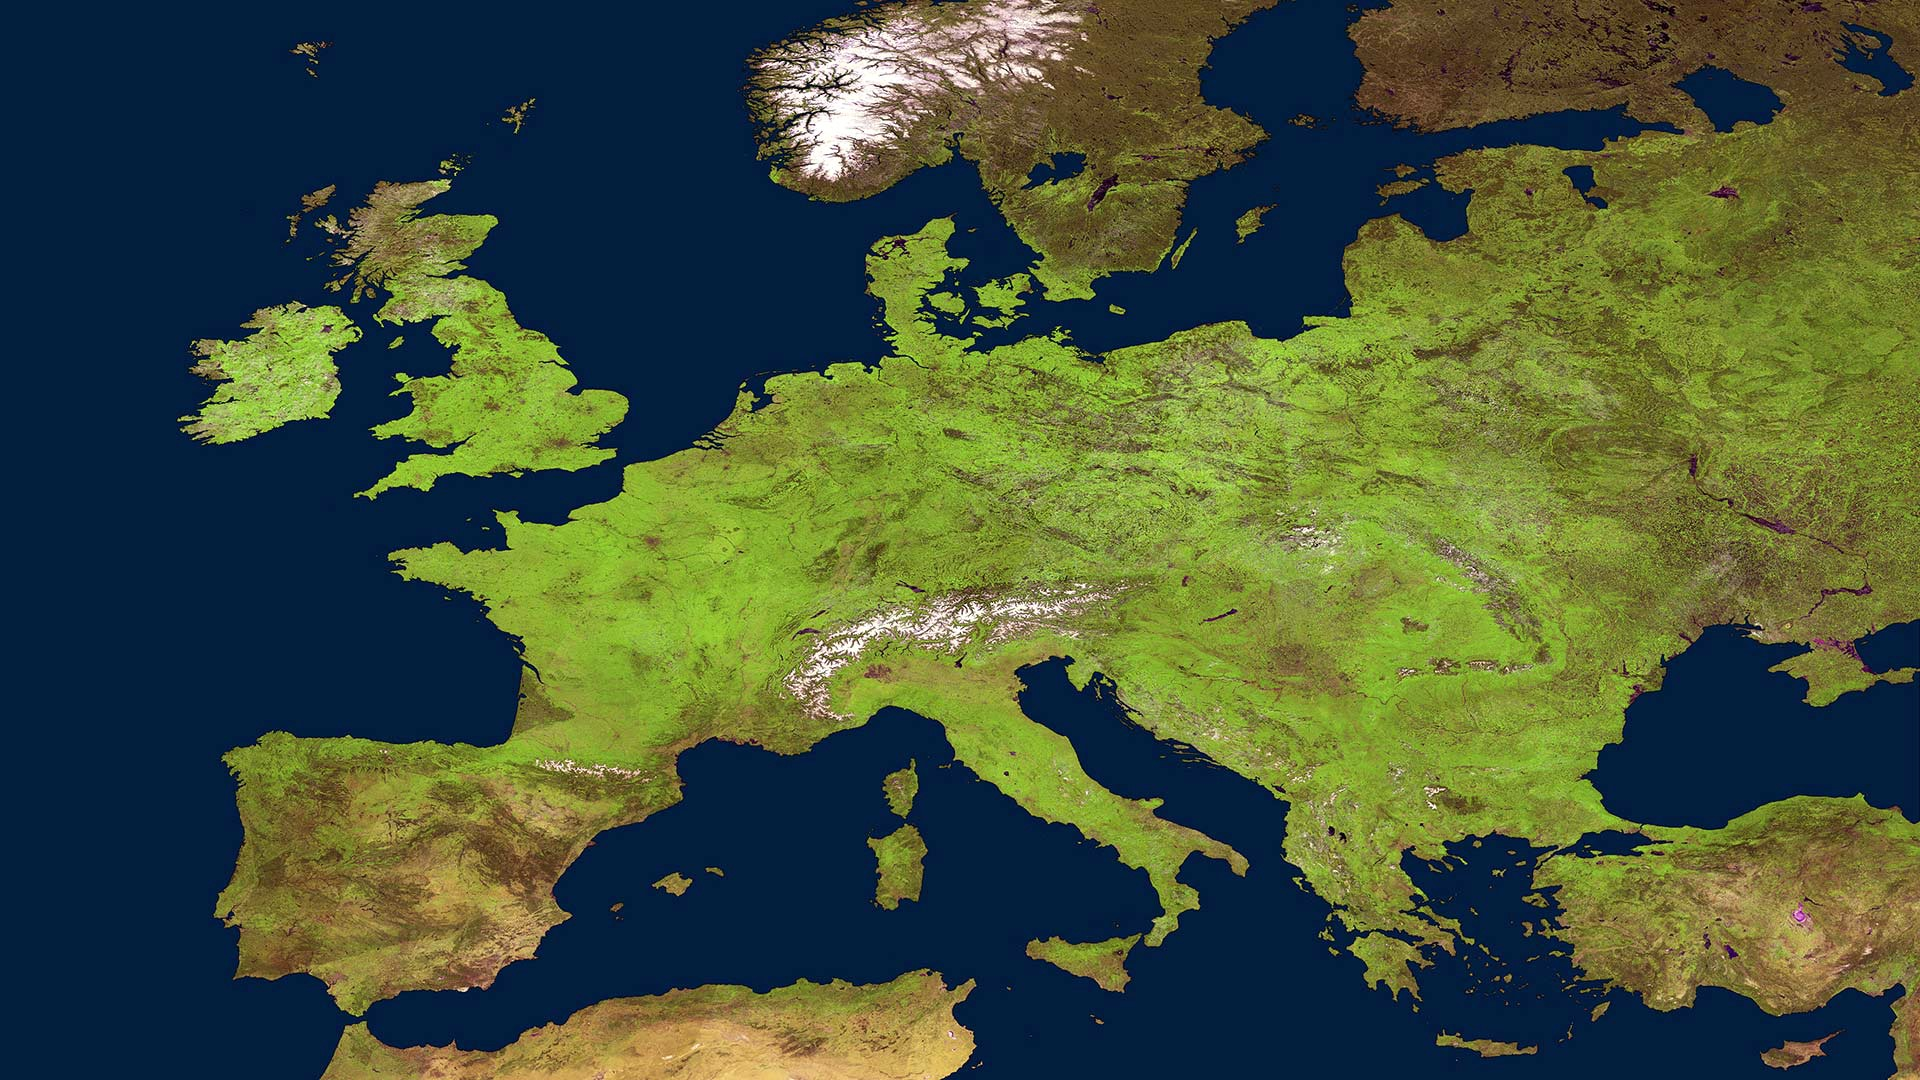 Wallpaper Map Of Europe 1920x1080 Full Hd 2k Picture Image